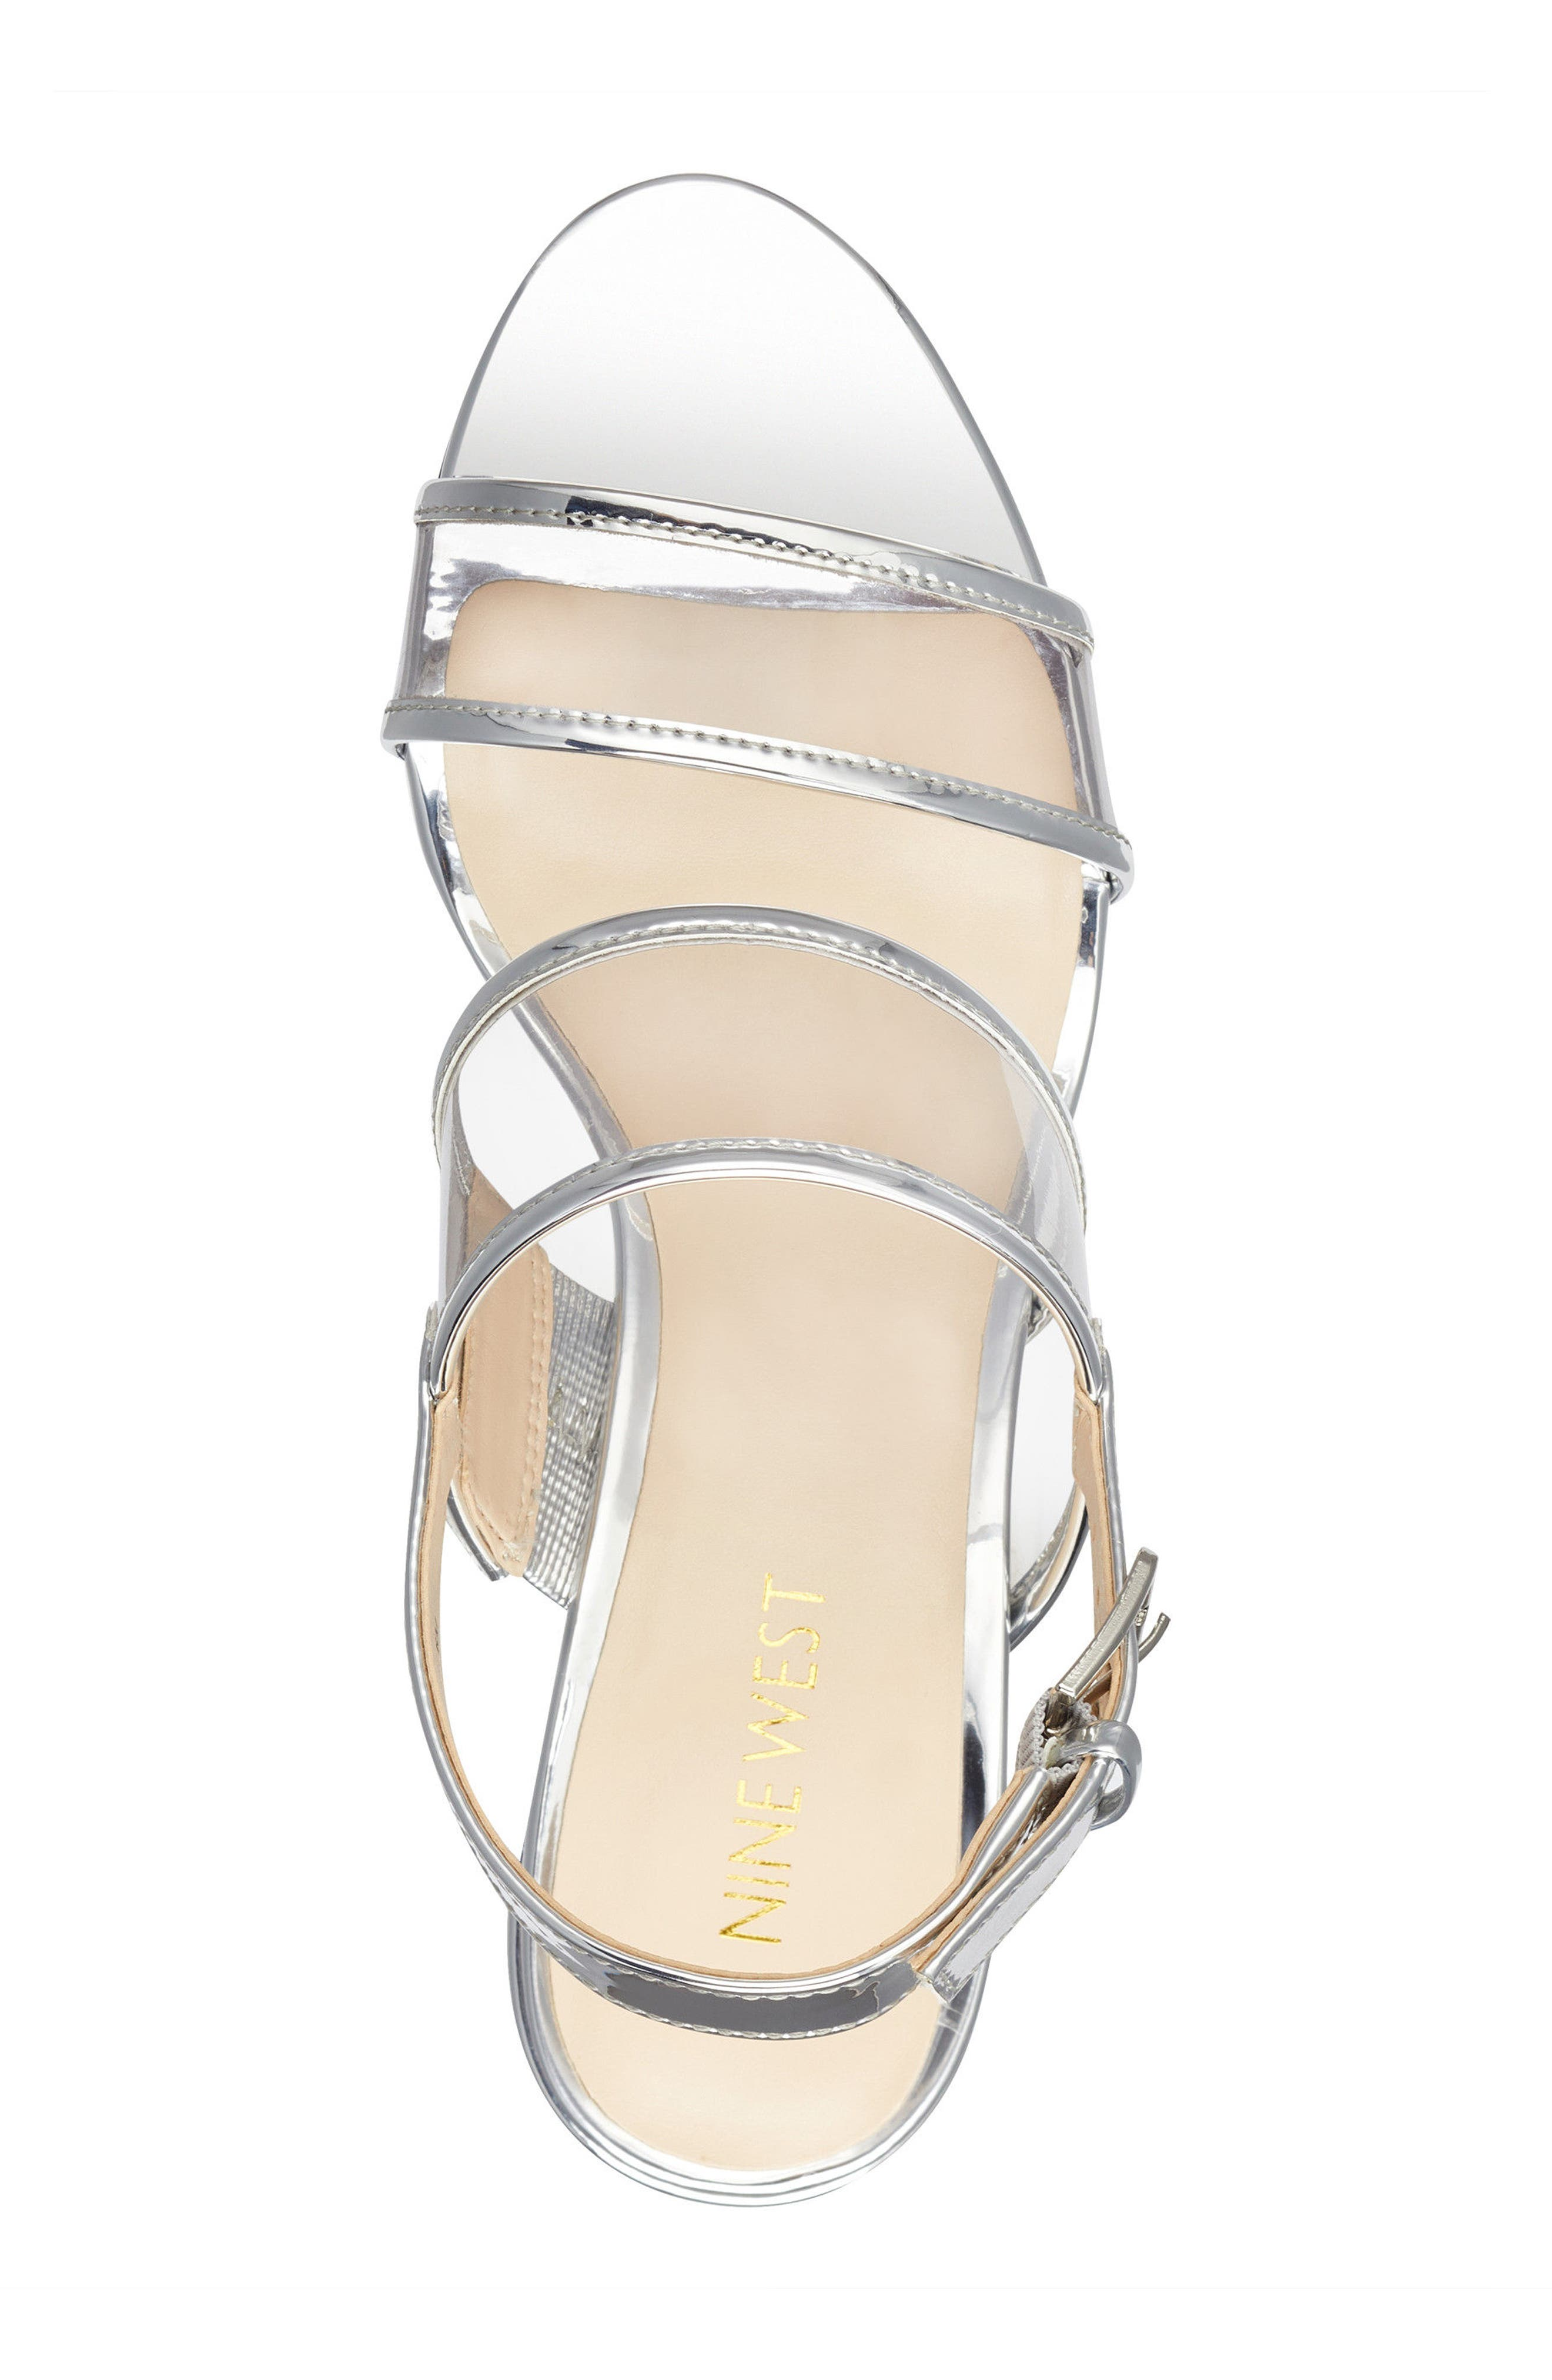 Gourdes Block Heel Sandal,                             Alternate thumbnail 5, color,                             Clear Grey Multi Faux Leather